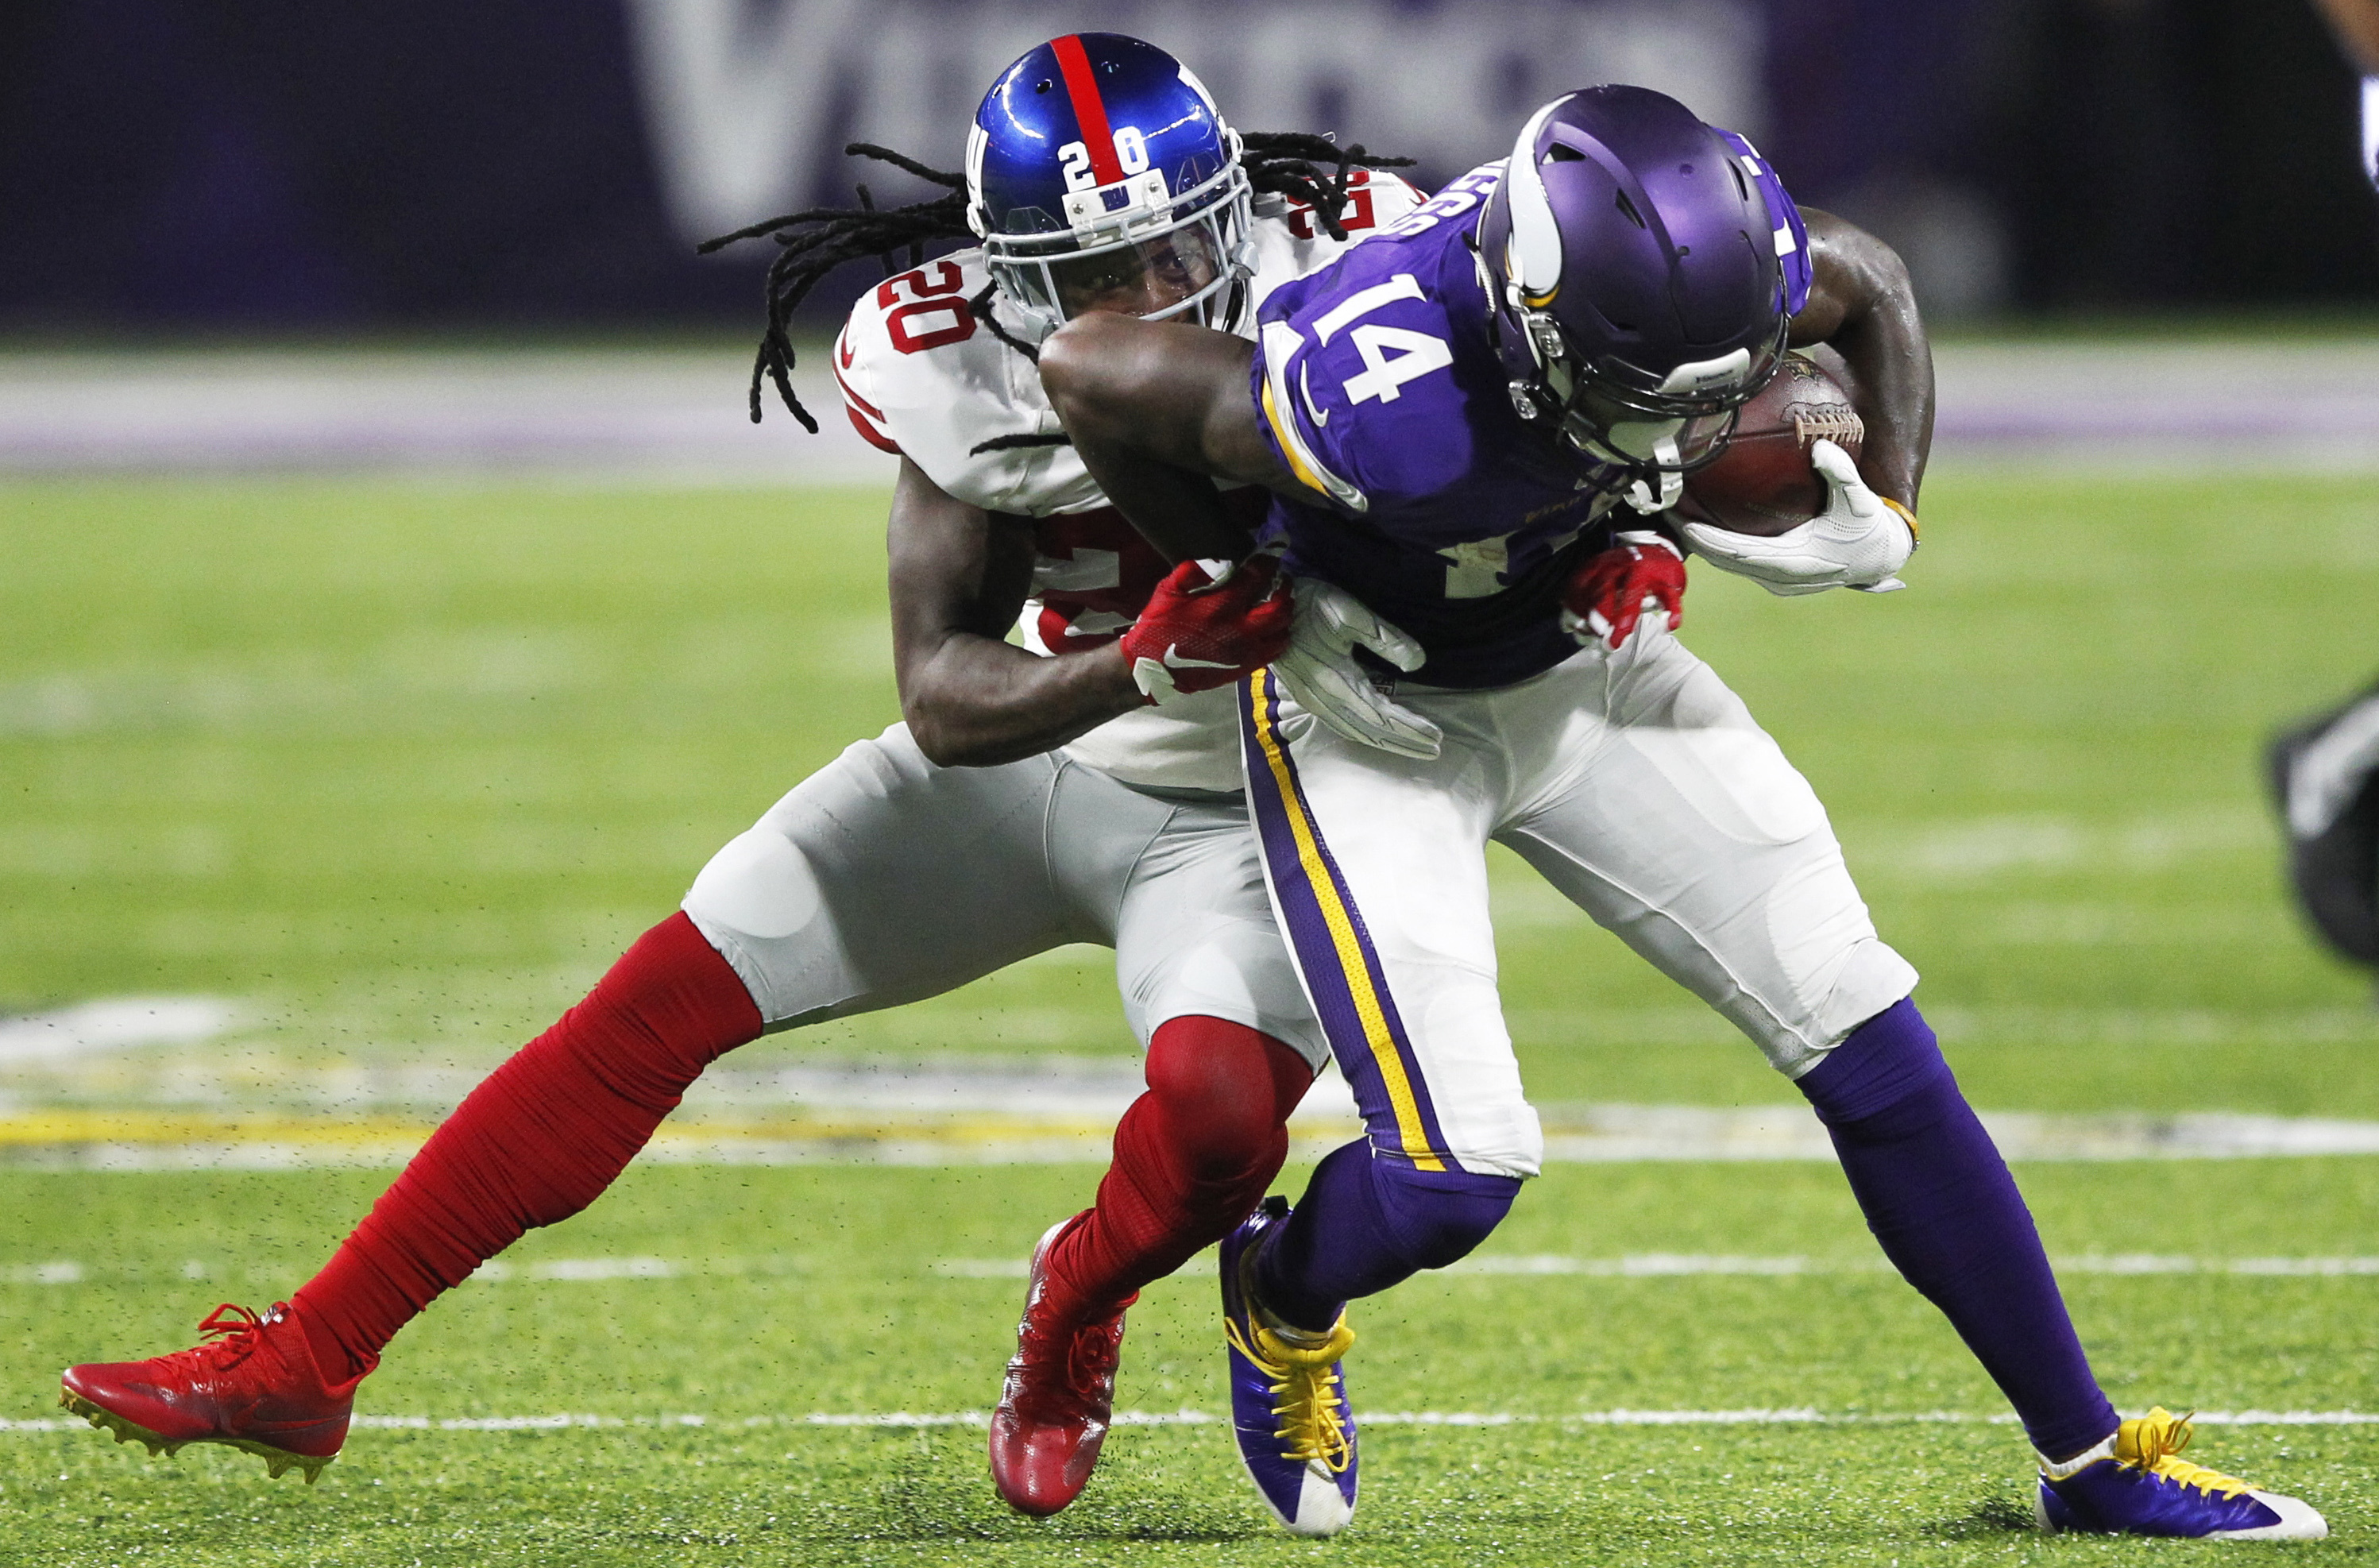 Minnesota Vikings wide receiver Stefon Diggs (14) tries to break a tackle by New York Giants cornerback Janoris Jenkins, left, after making a reception during the second half of an NFL football game, Monday, Oct. 3, 2016, in Minneapolis. (AP Photo/Andy Cl